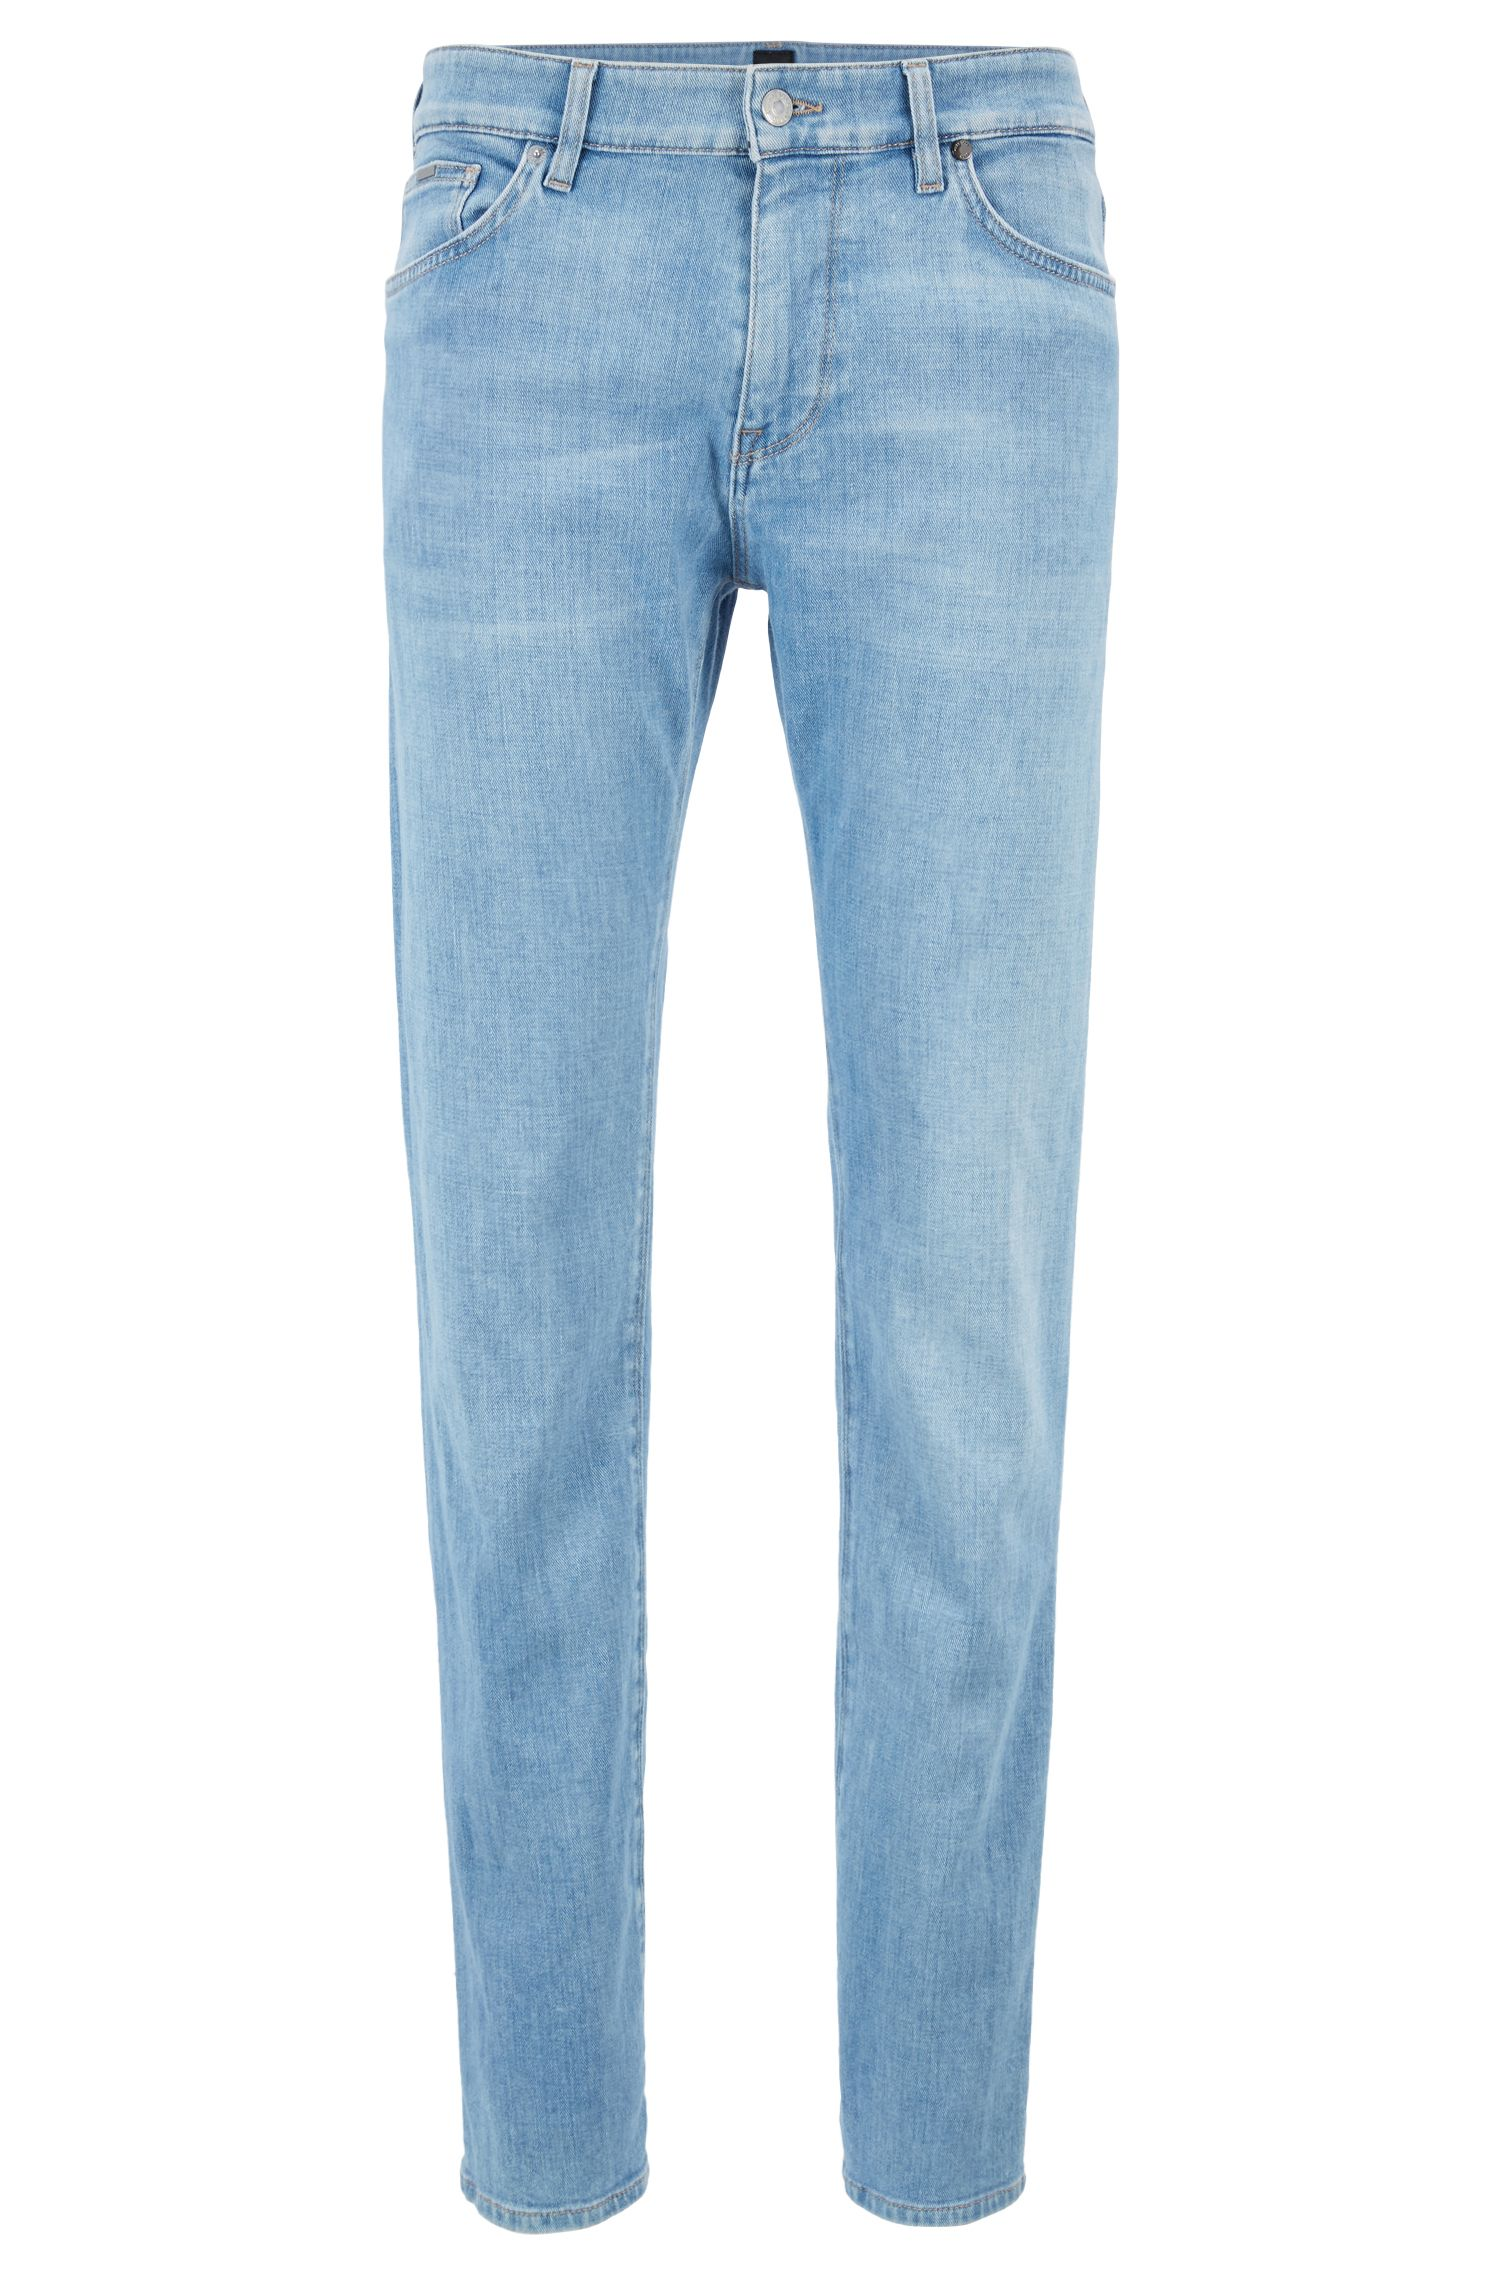 Jeans regular fit in denim elasticizzato italiano blu acceso, Turchese